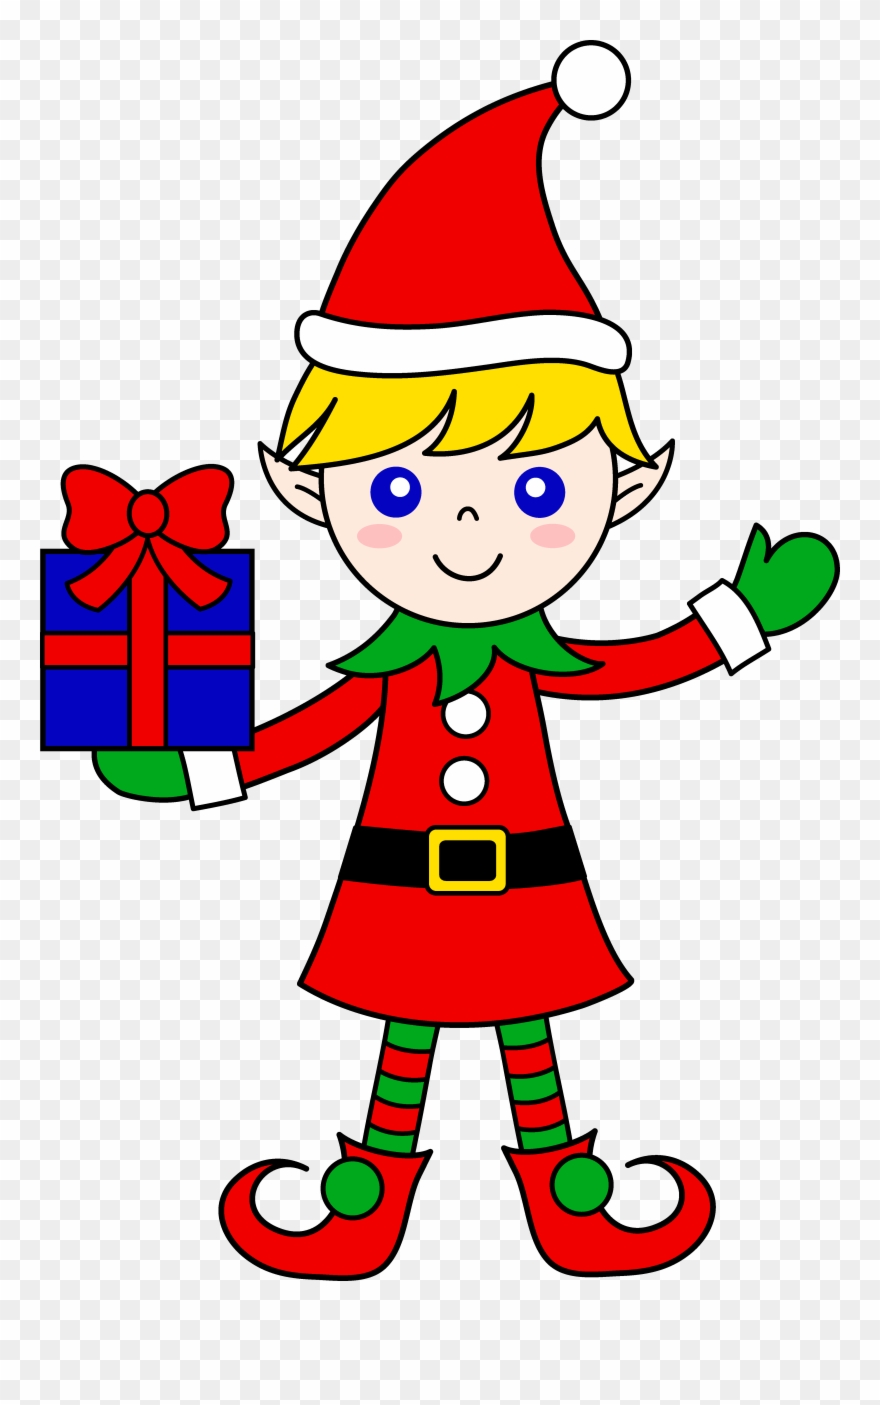 Cute christmas elf with. Elves clipart gift